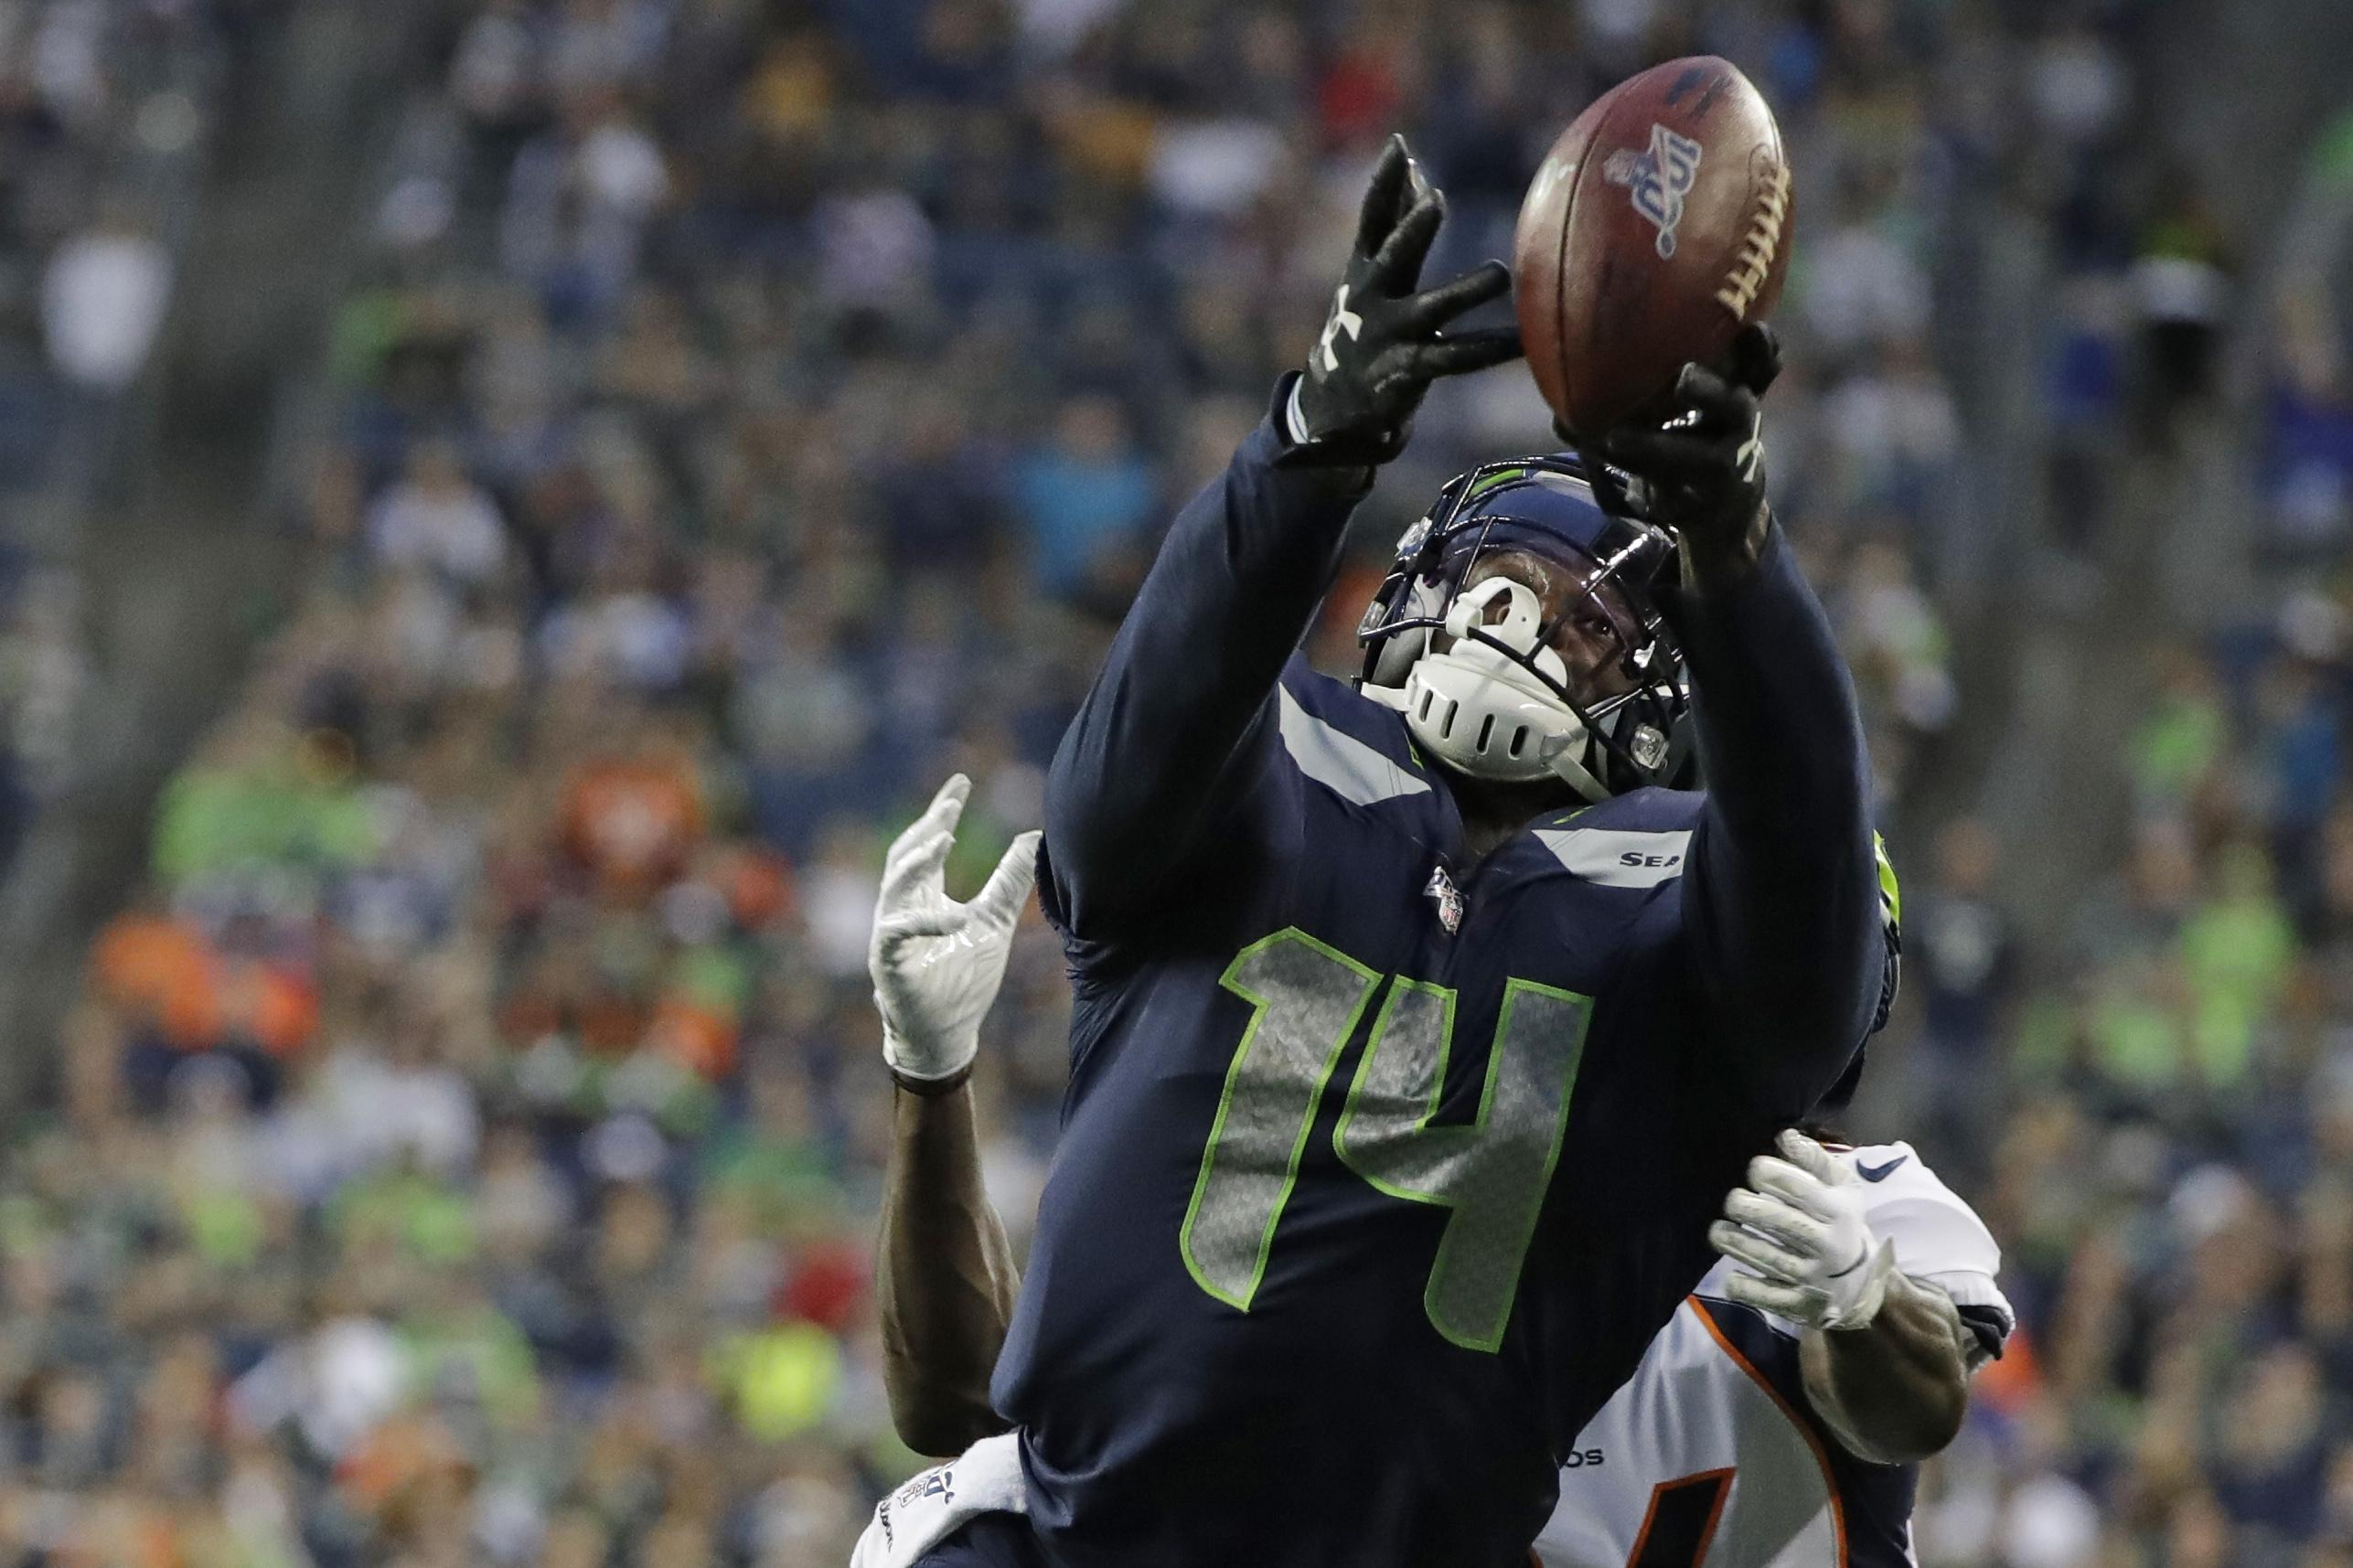 Larry Stone: Quiet night from Seahawks rookie DK Metcalf ...